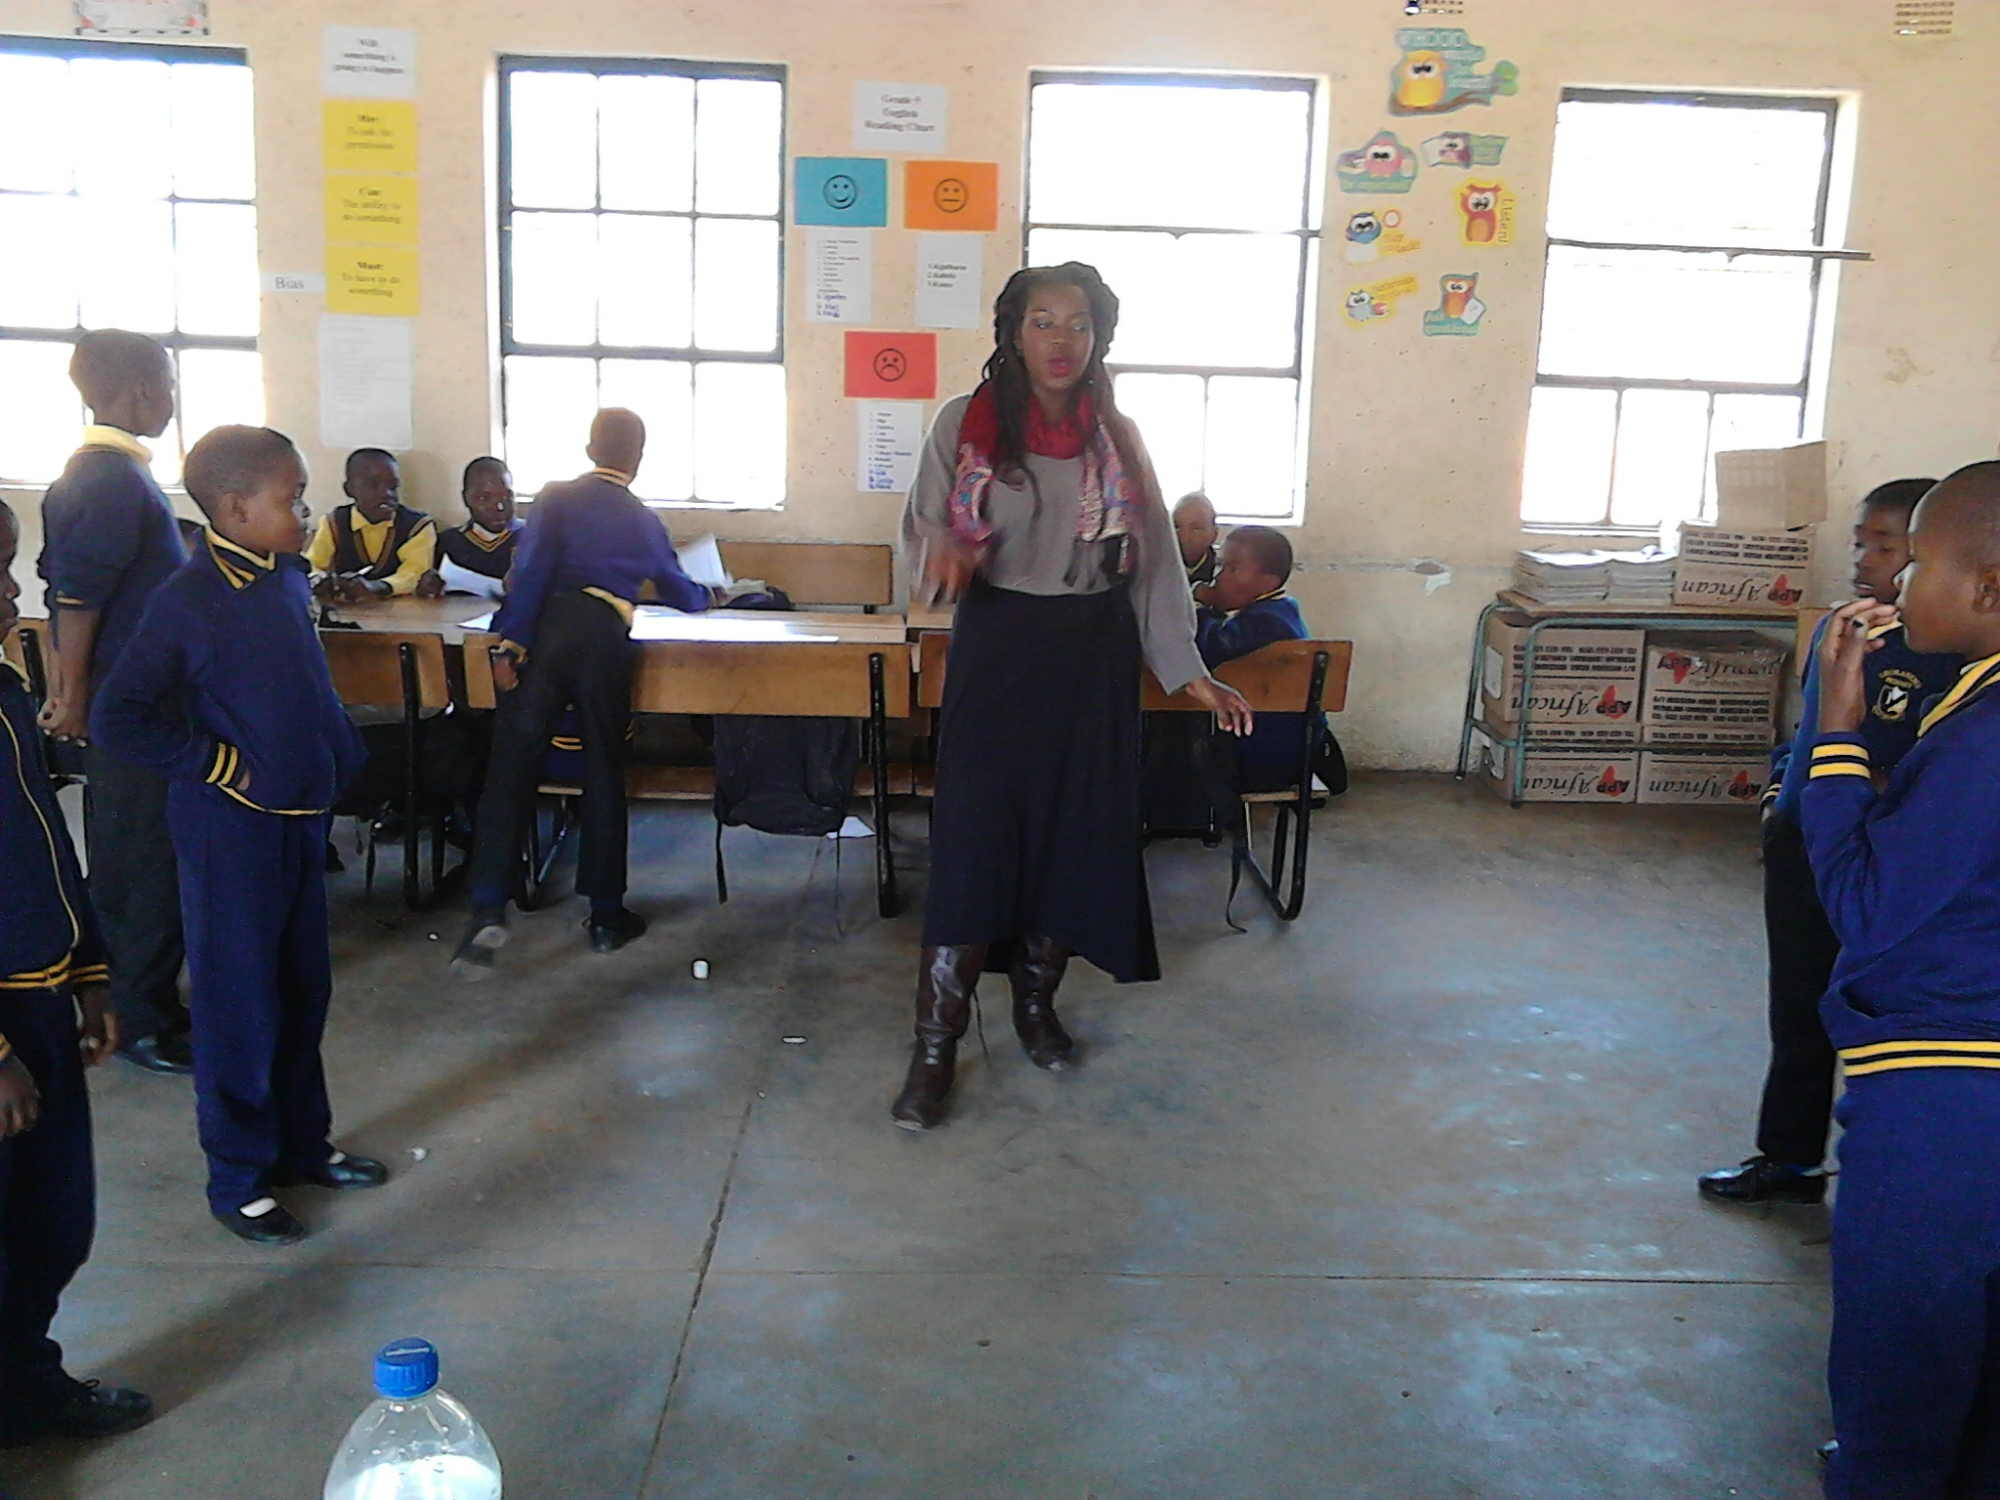 The Ubuntu Journey My Peace Corps Journey To South Africa